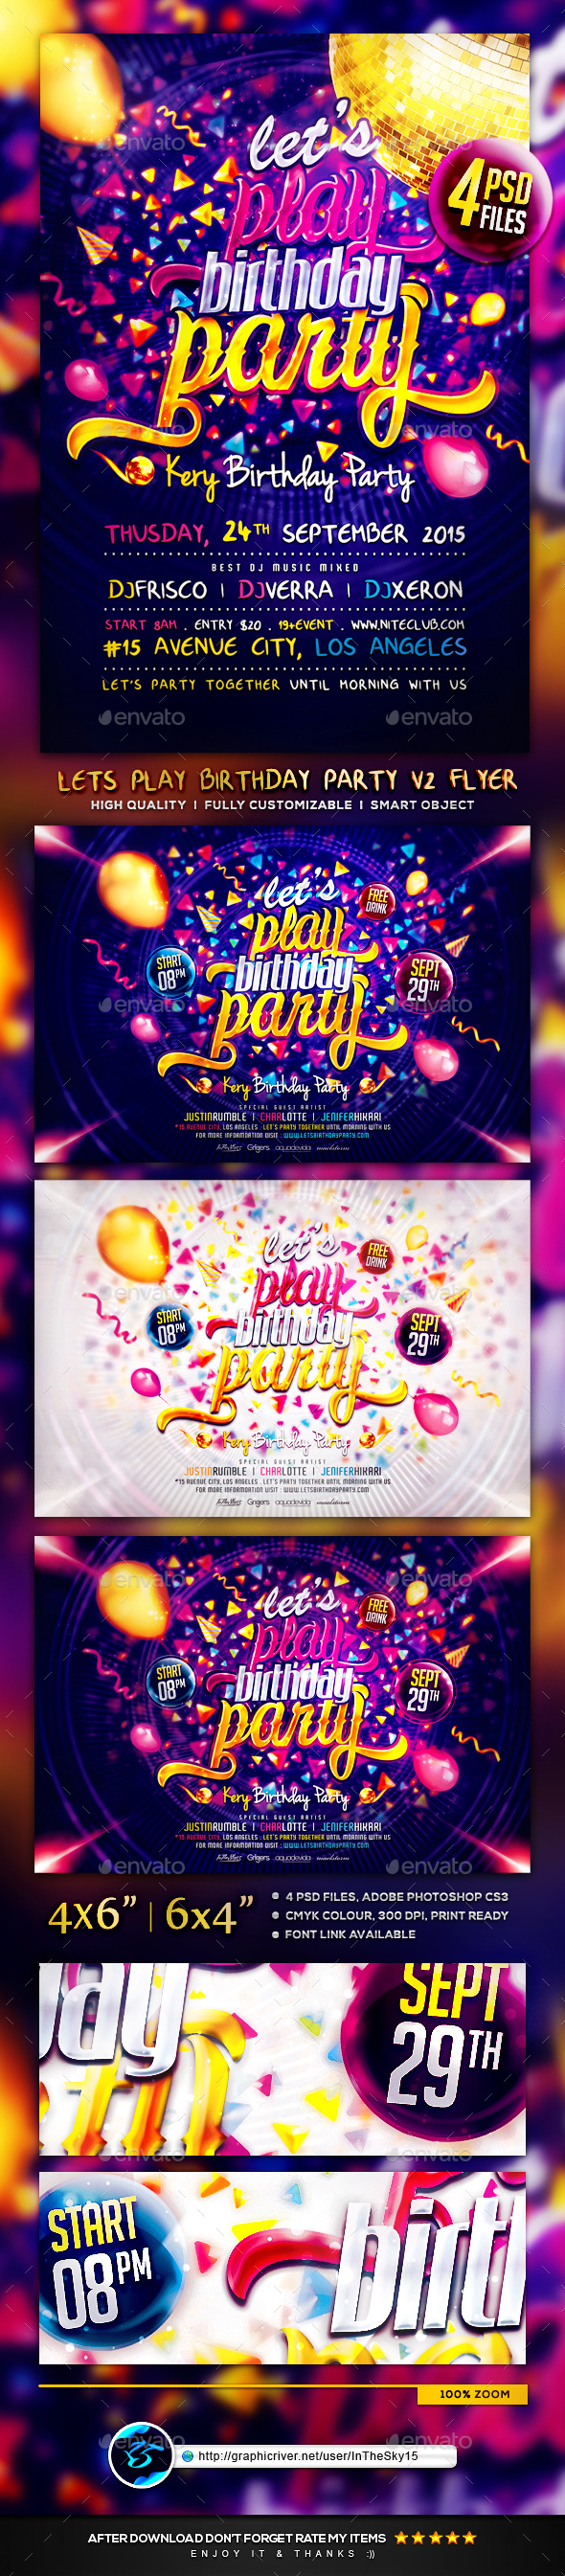 Lets Play Birthday Party V2 Flyer Template - Flyers Print Templates